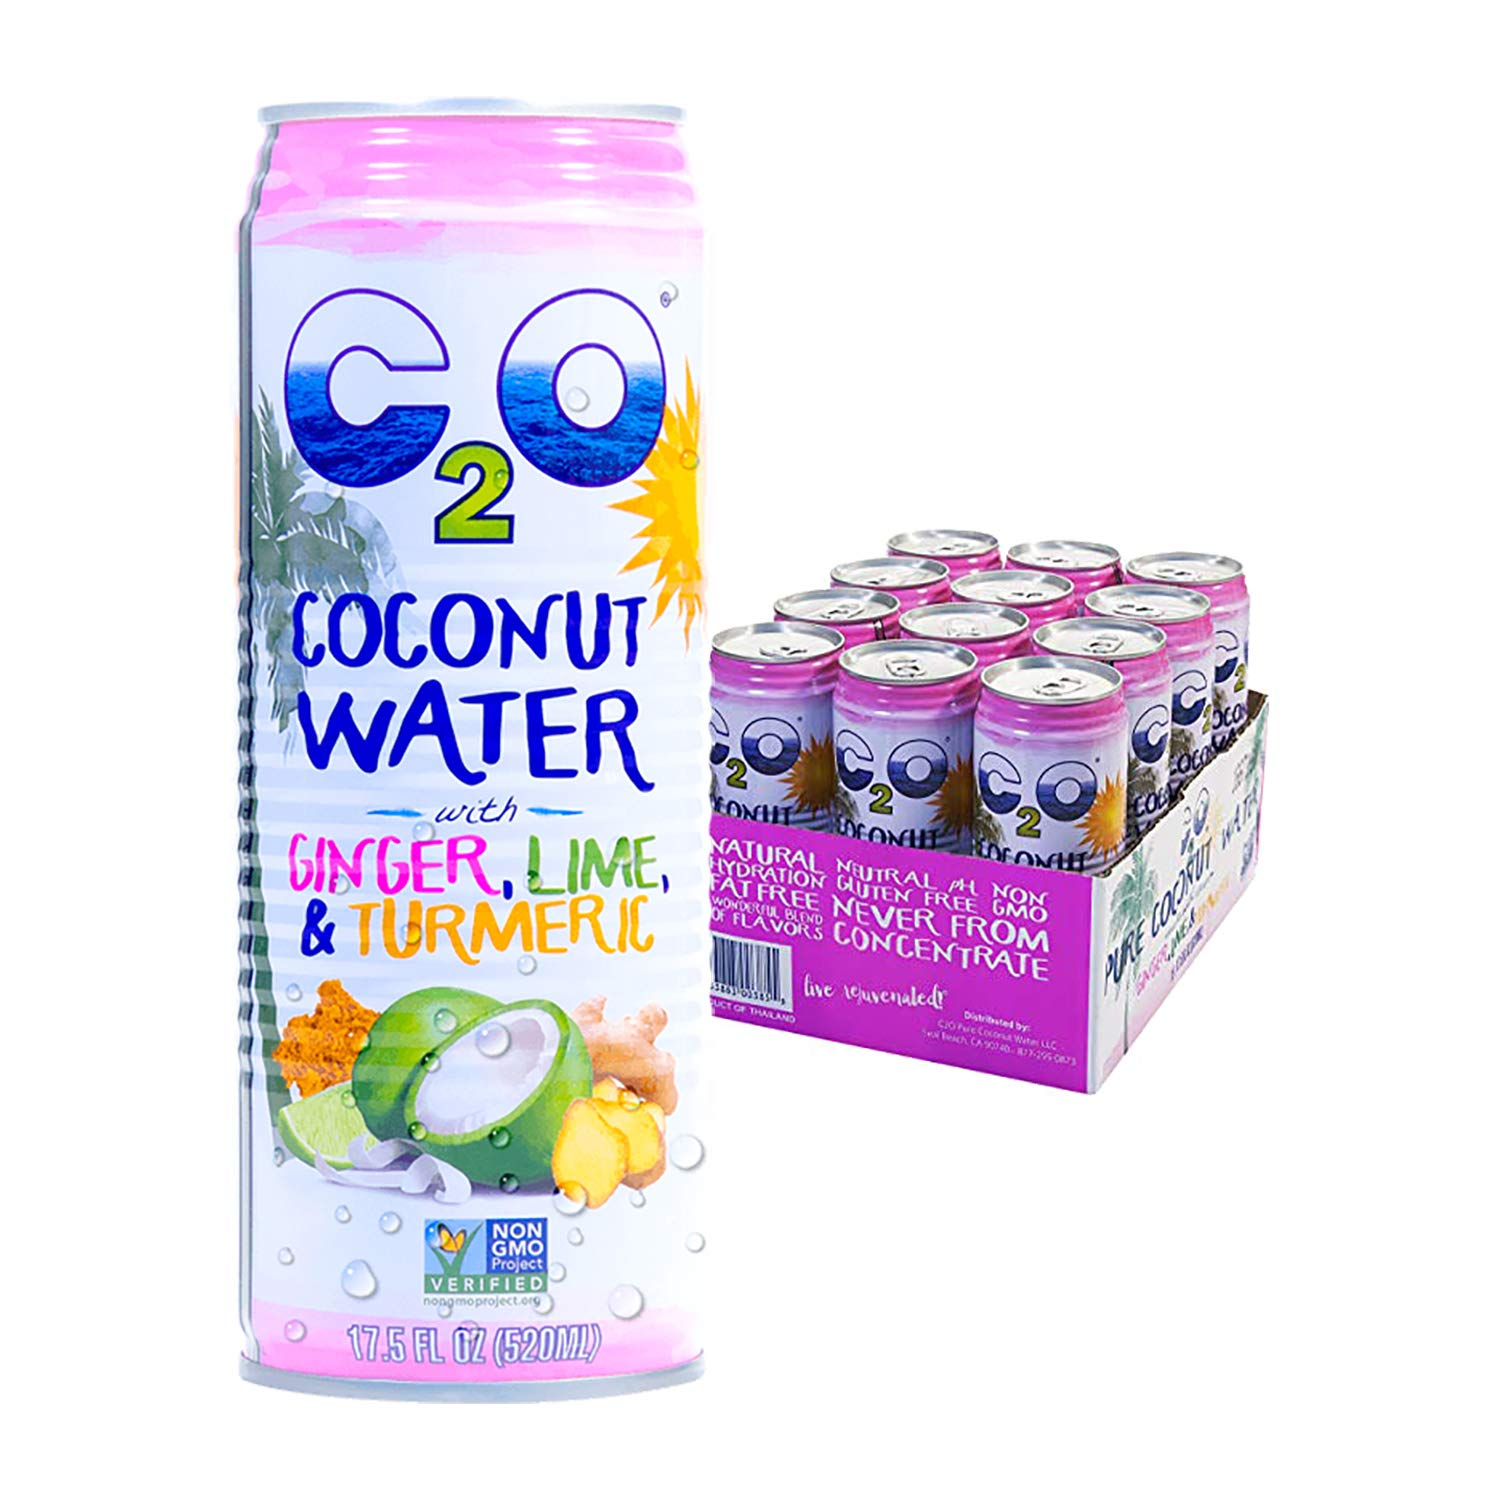 C2O Pure Coconut Water With Ginger, Lime and Turmeric. 100% All Natural Electrolyte Drink - Healthy Alternative to Soda, Coffee, and Sports Drink - Non-GMO, Gluten Free – 17.5 Fluid Ounce (Pack of 12)